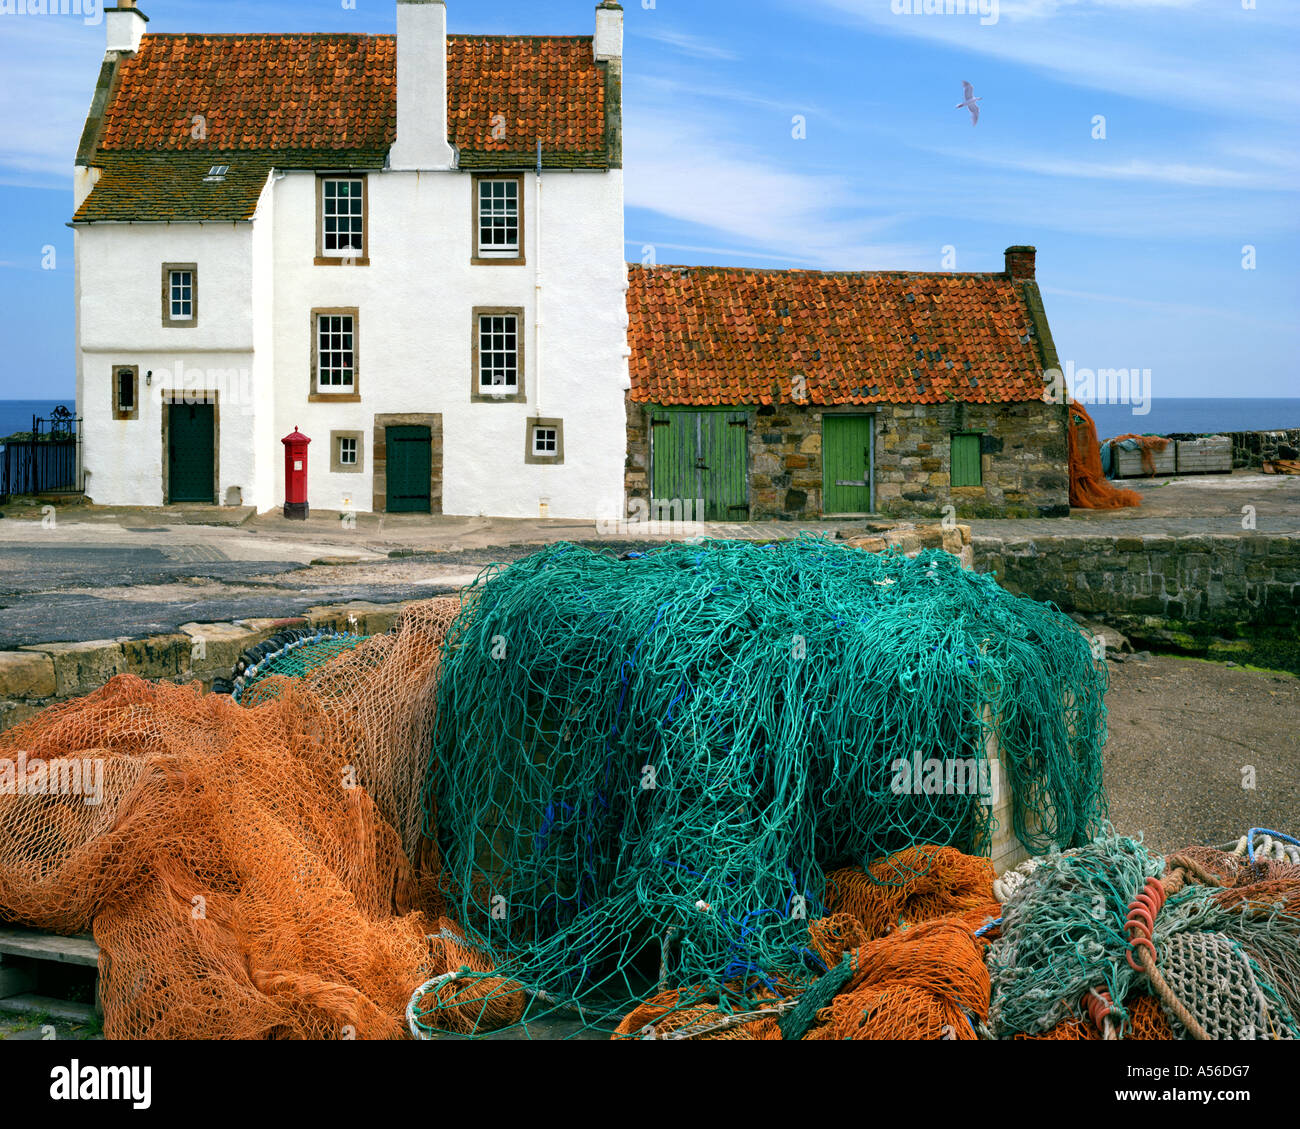 GB - Schottland: Cottage in Pittenweem Harbour Stockbild